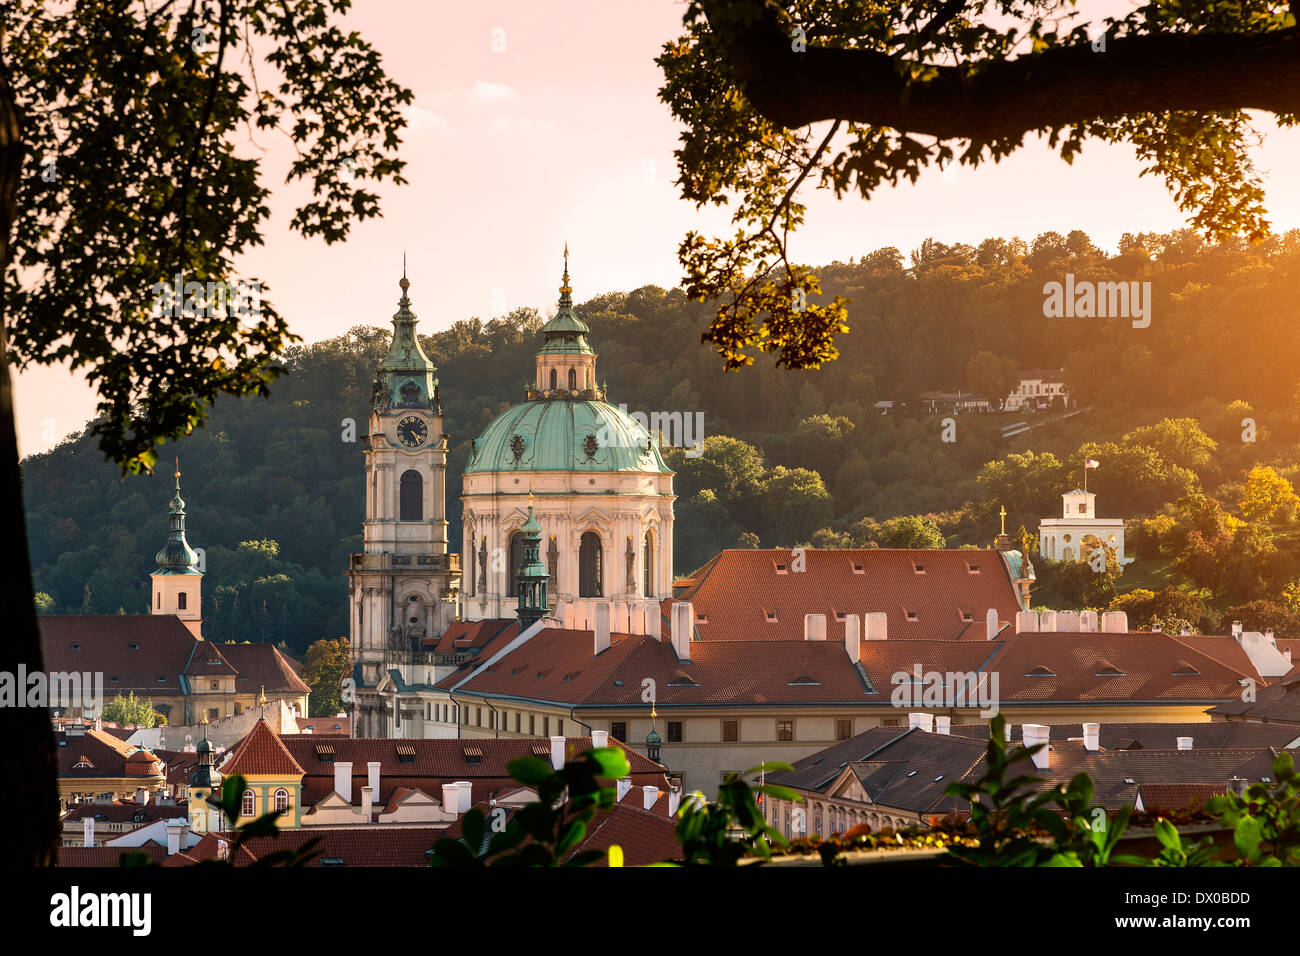 Dome and Bell Tower of Saint Nicholas' Church, Prague, Czech Republic. - Stock Image